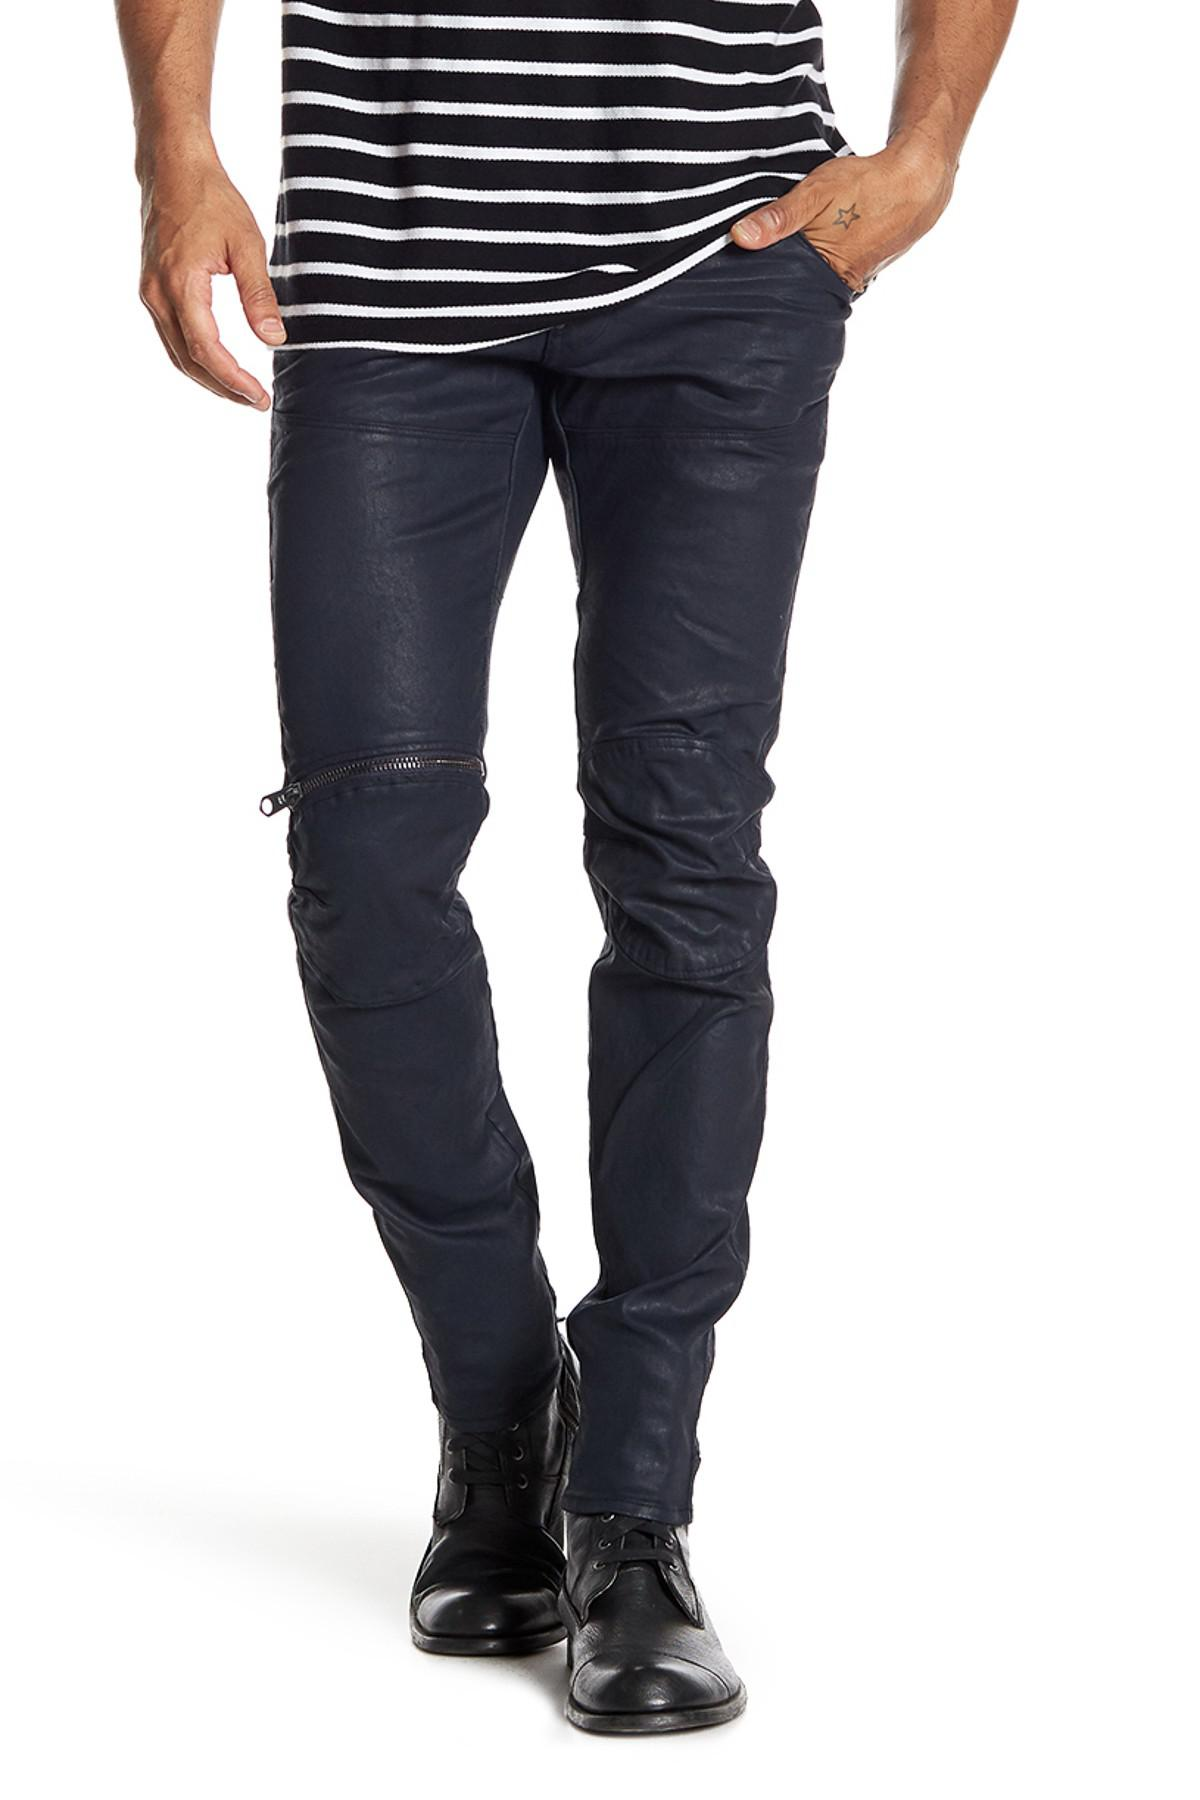 8726c0db34bb5 Lyst - G-Star Raw 5620 3d Skinny Jeans - 32